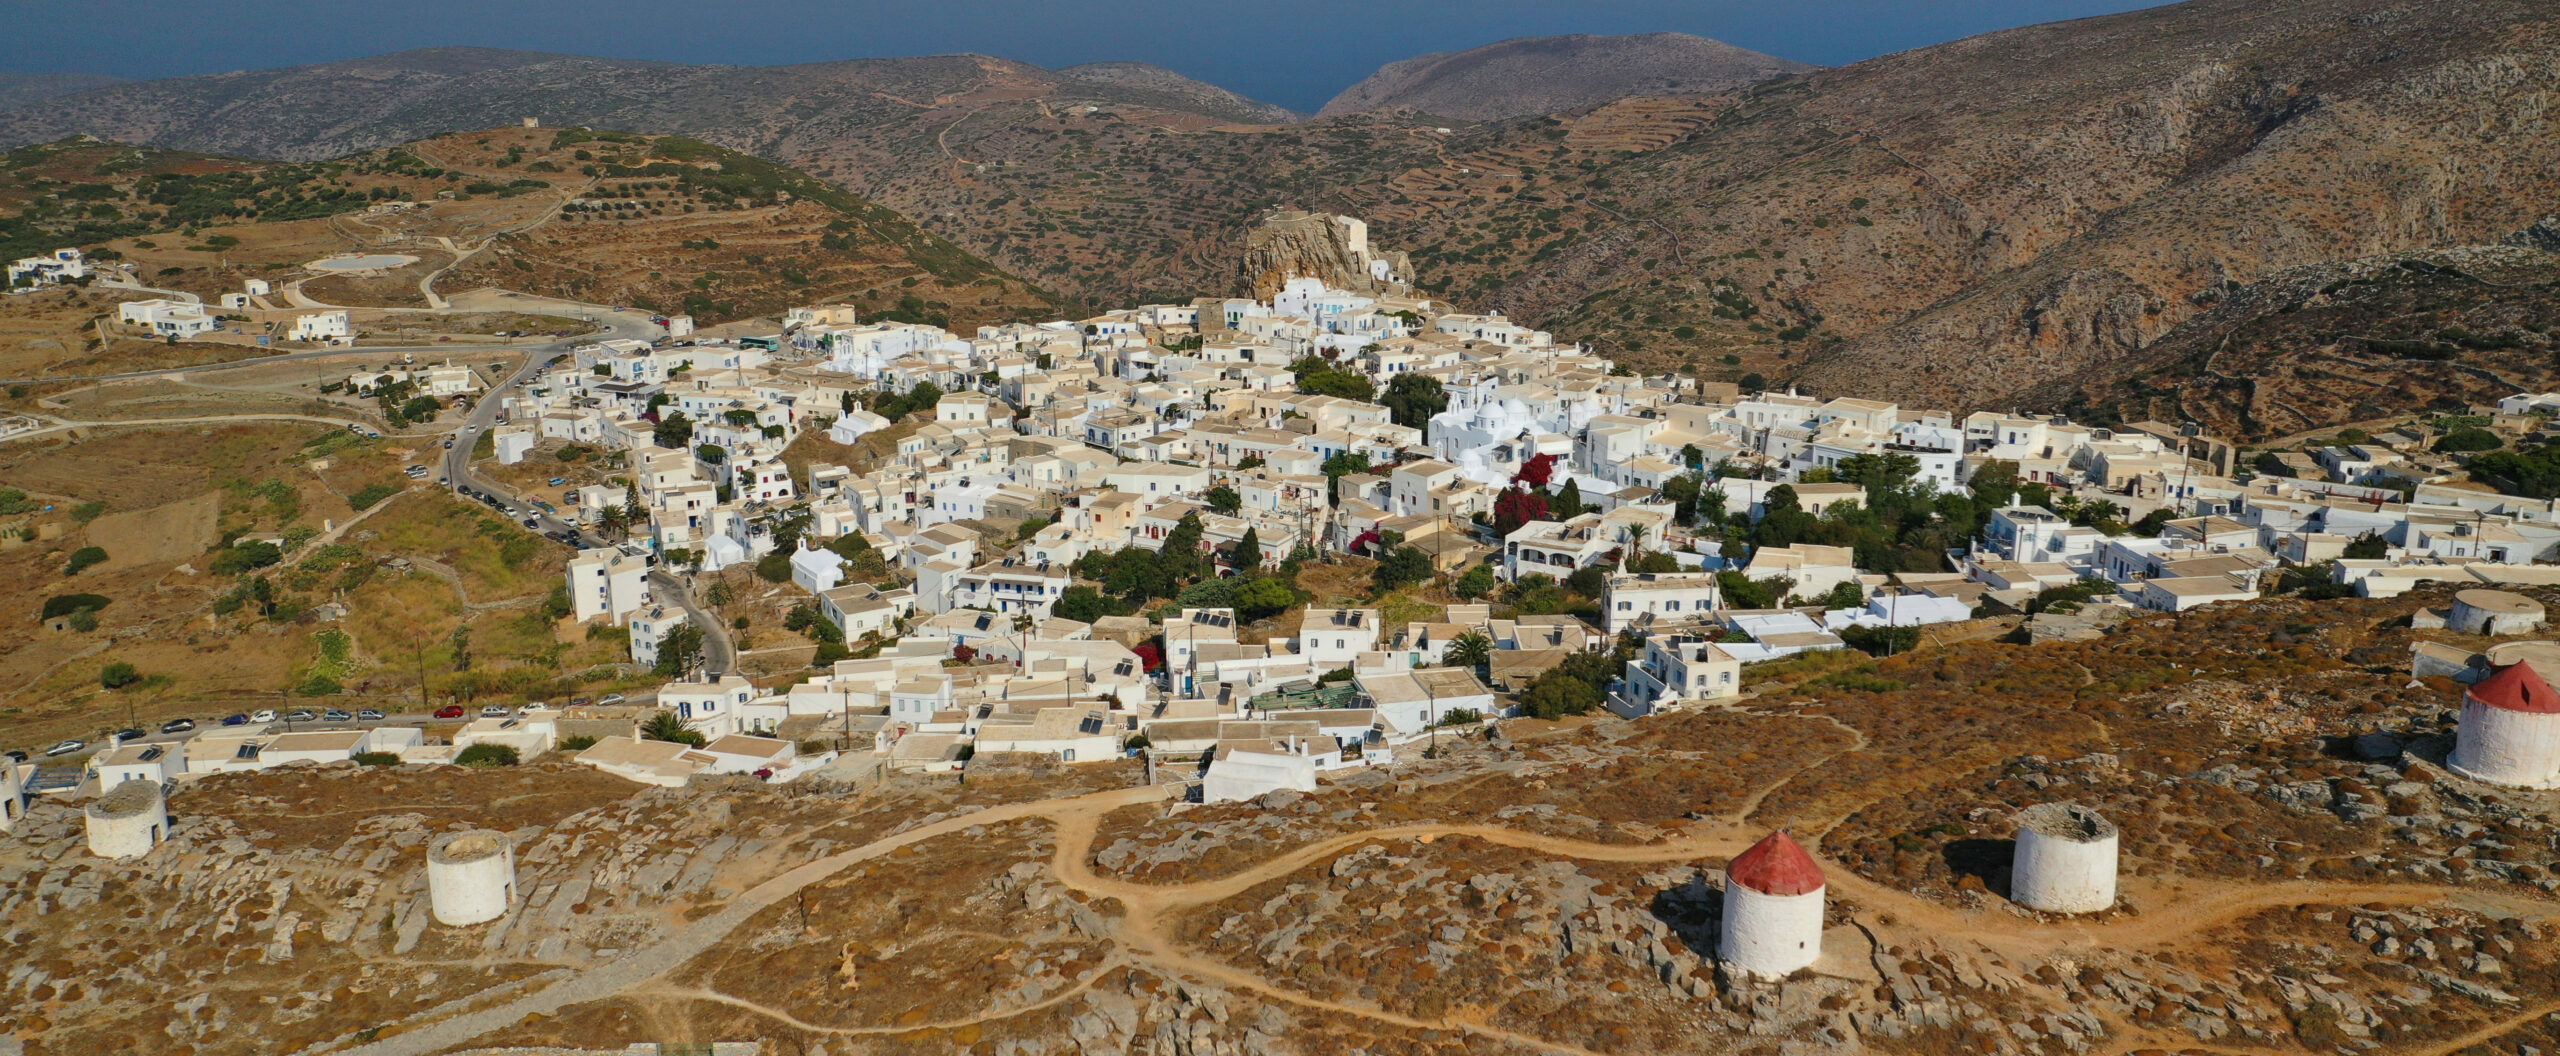 Amorgos Town: A trip to the endless blue